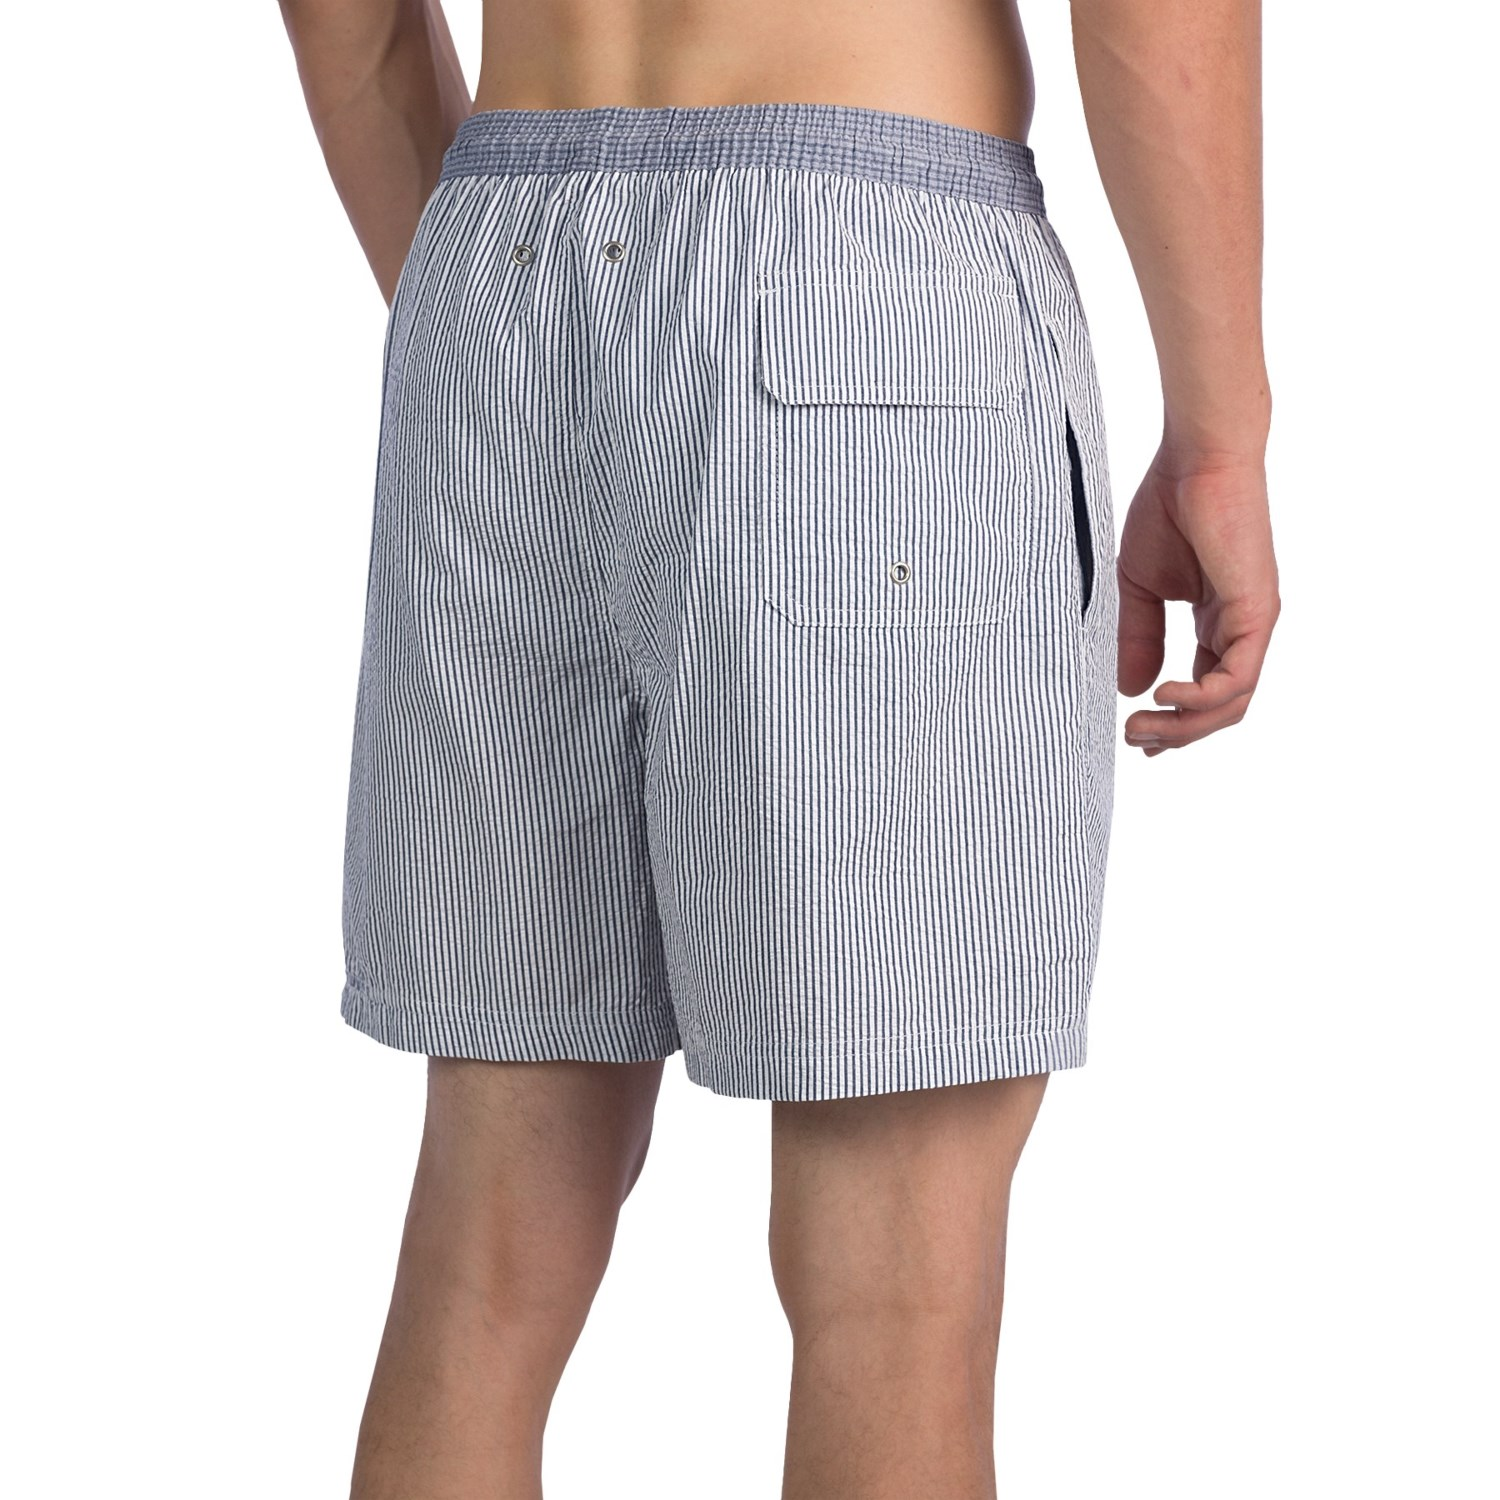 Free shipping BOTH ways on mens beach shorts clothing, from our vast selection of styles. Fast delivery, and 24/7/ real-person service with a smile. Click or call